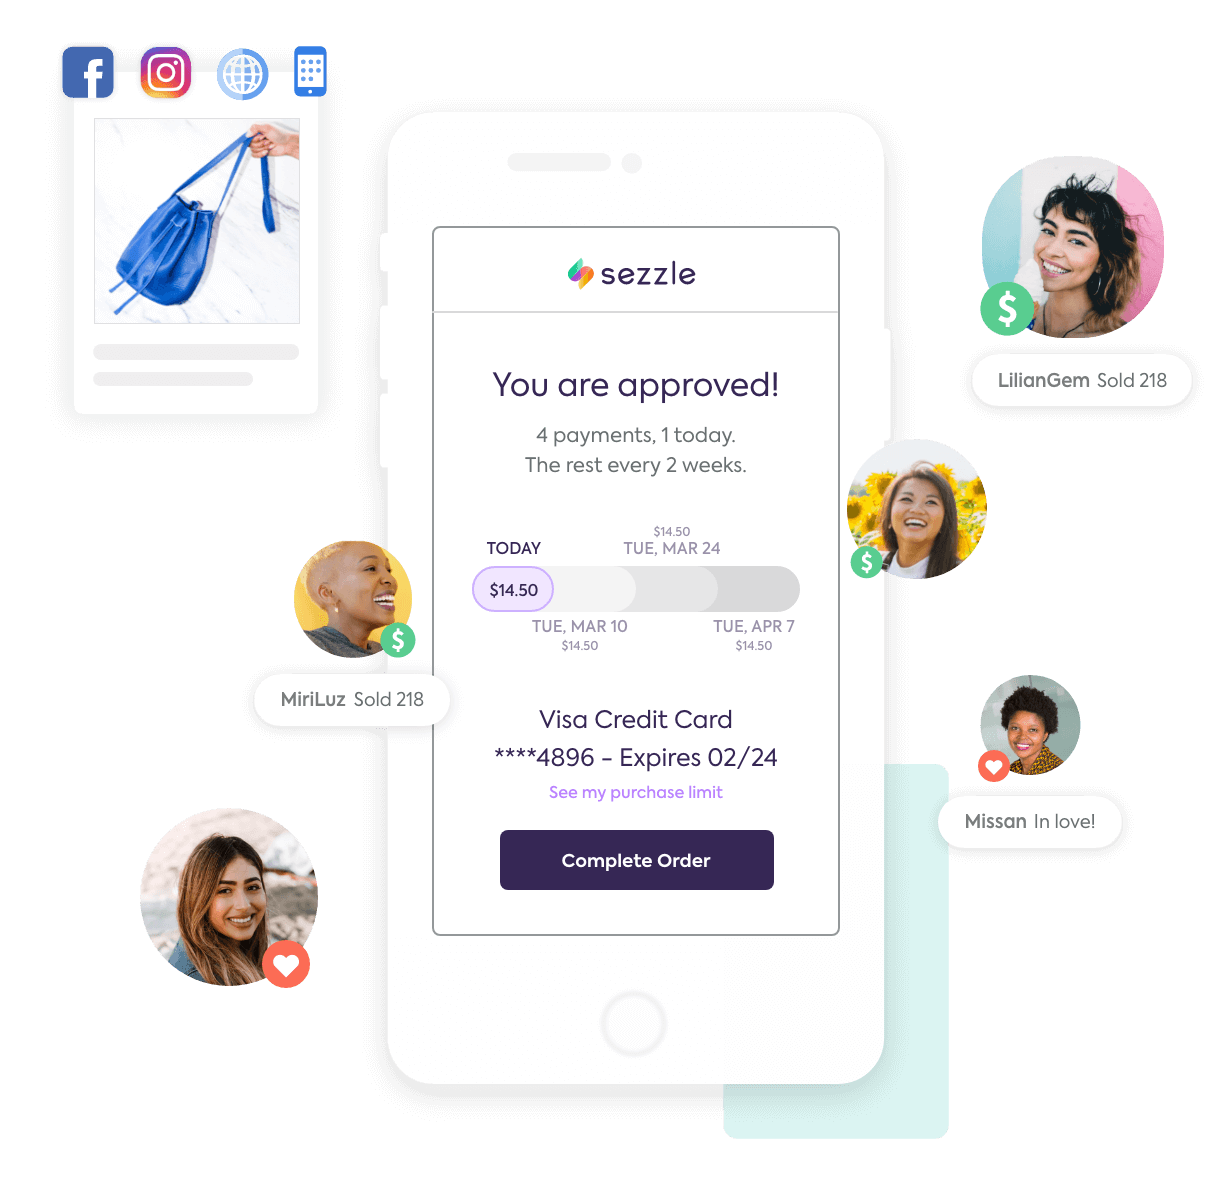 Sezzle payment agreement with a shopper, comment purchases, and a social post selling a purse with Facebook, Instagram, webstore, and mobile app icons above it